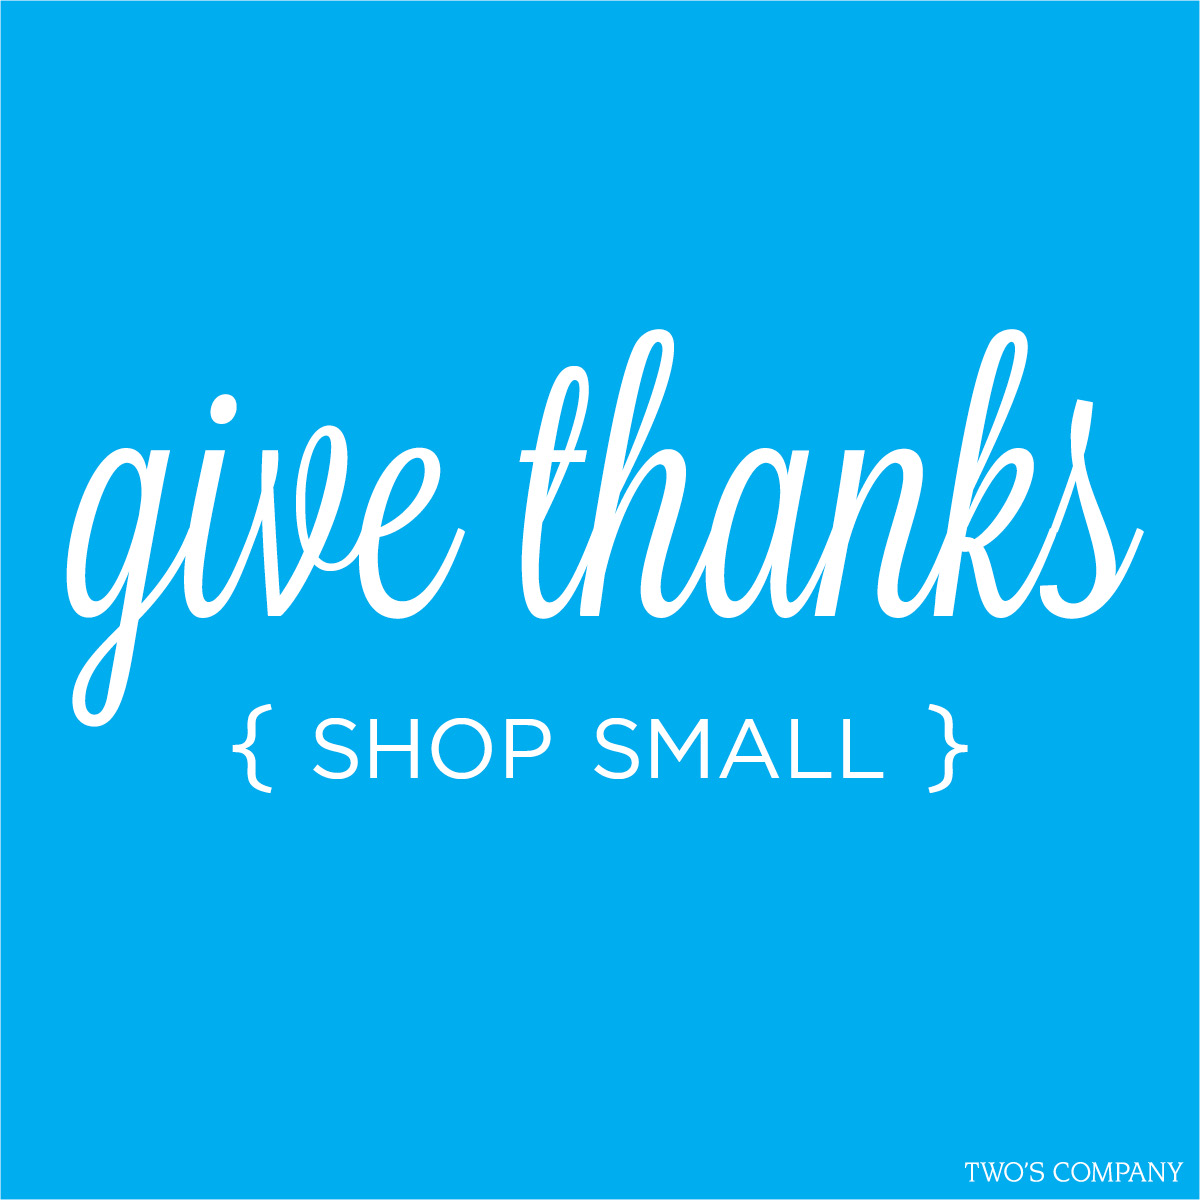 Give Thanks Shop Small